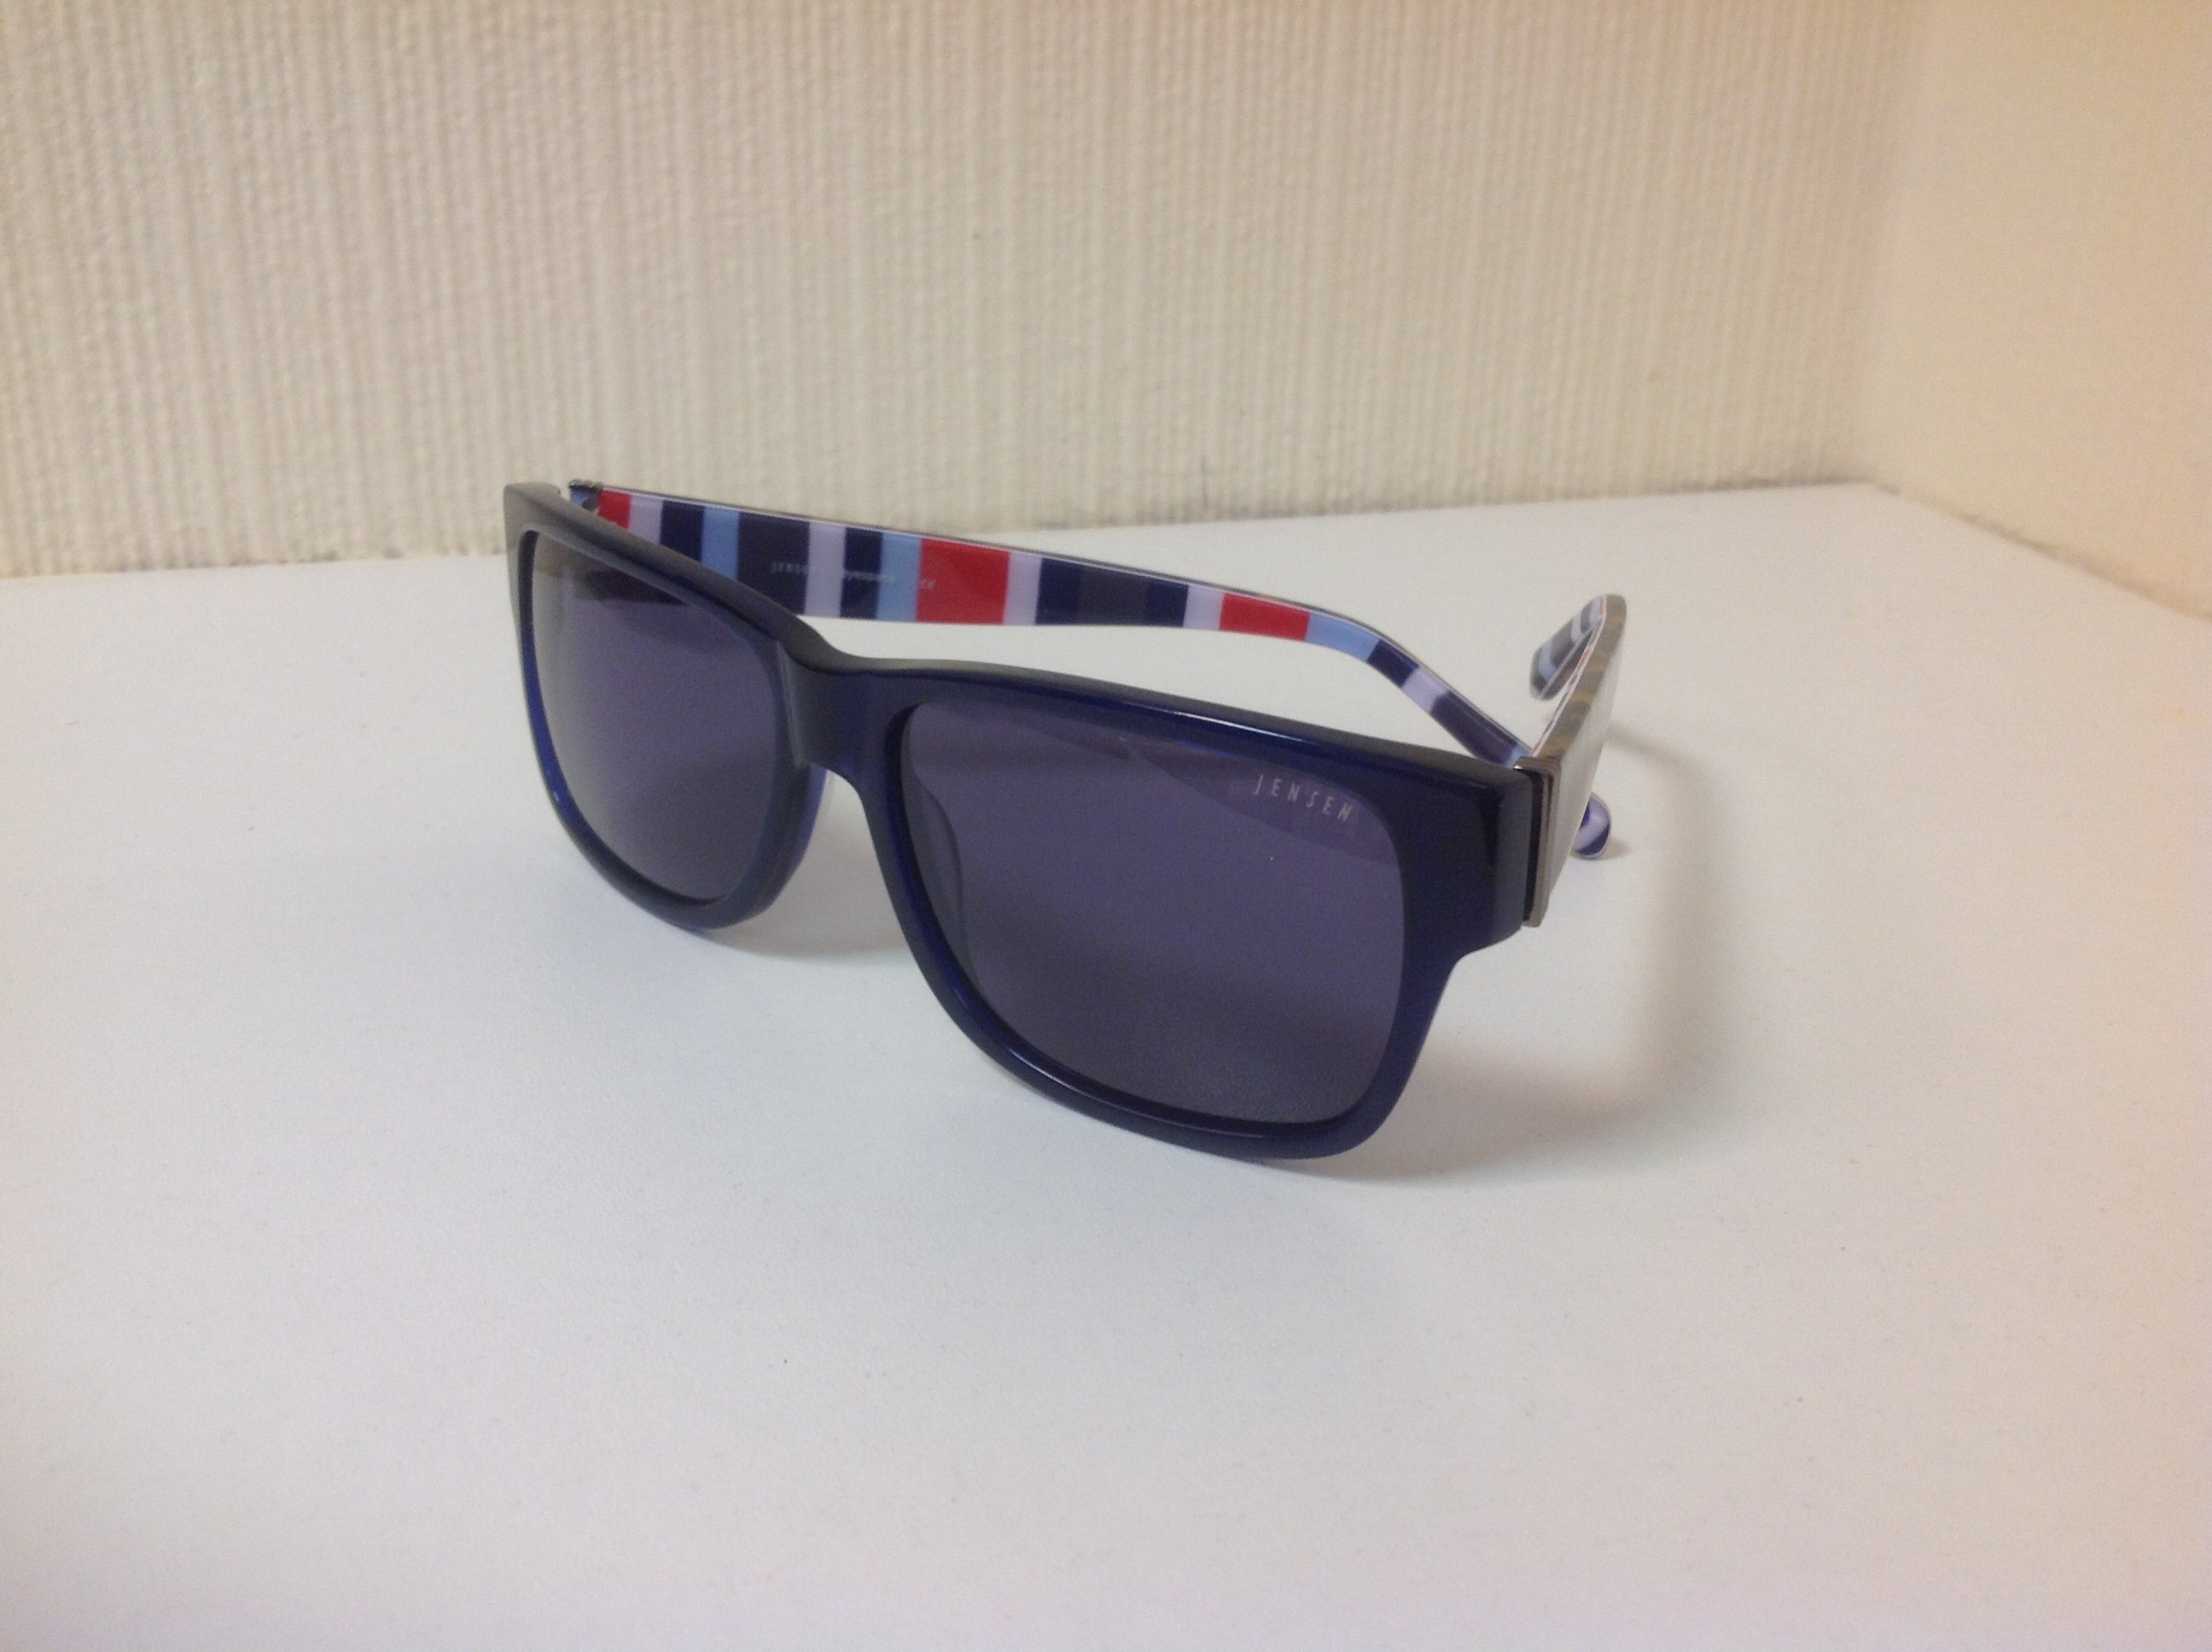 Sunglasses with striped arms